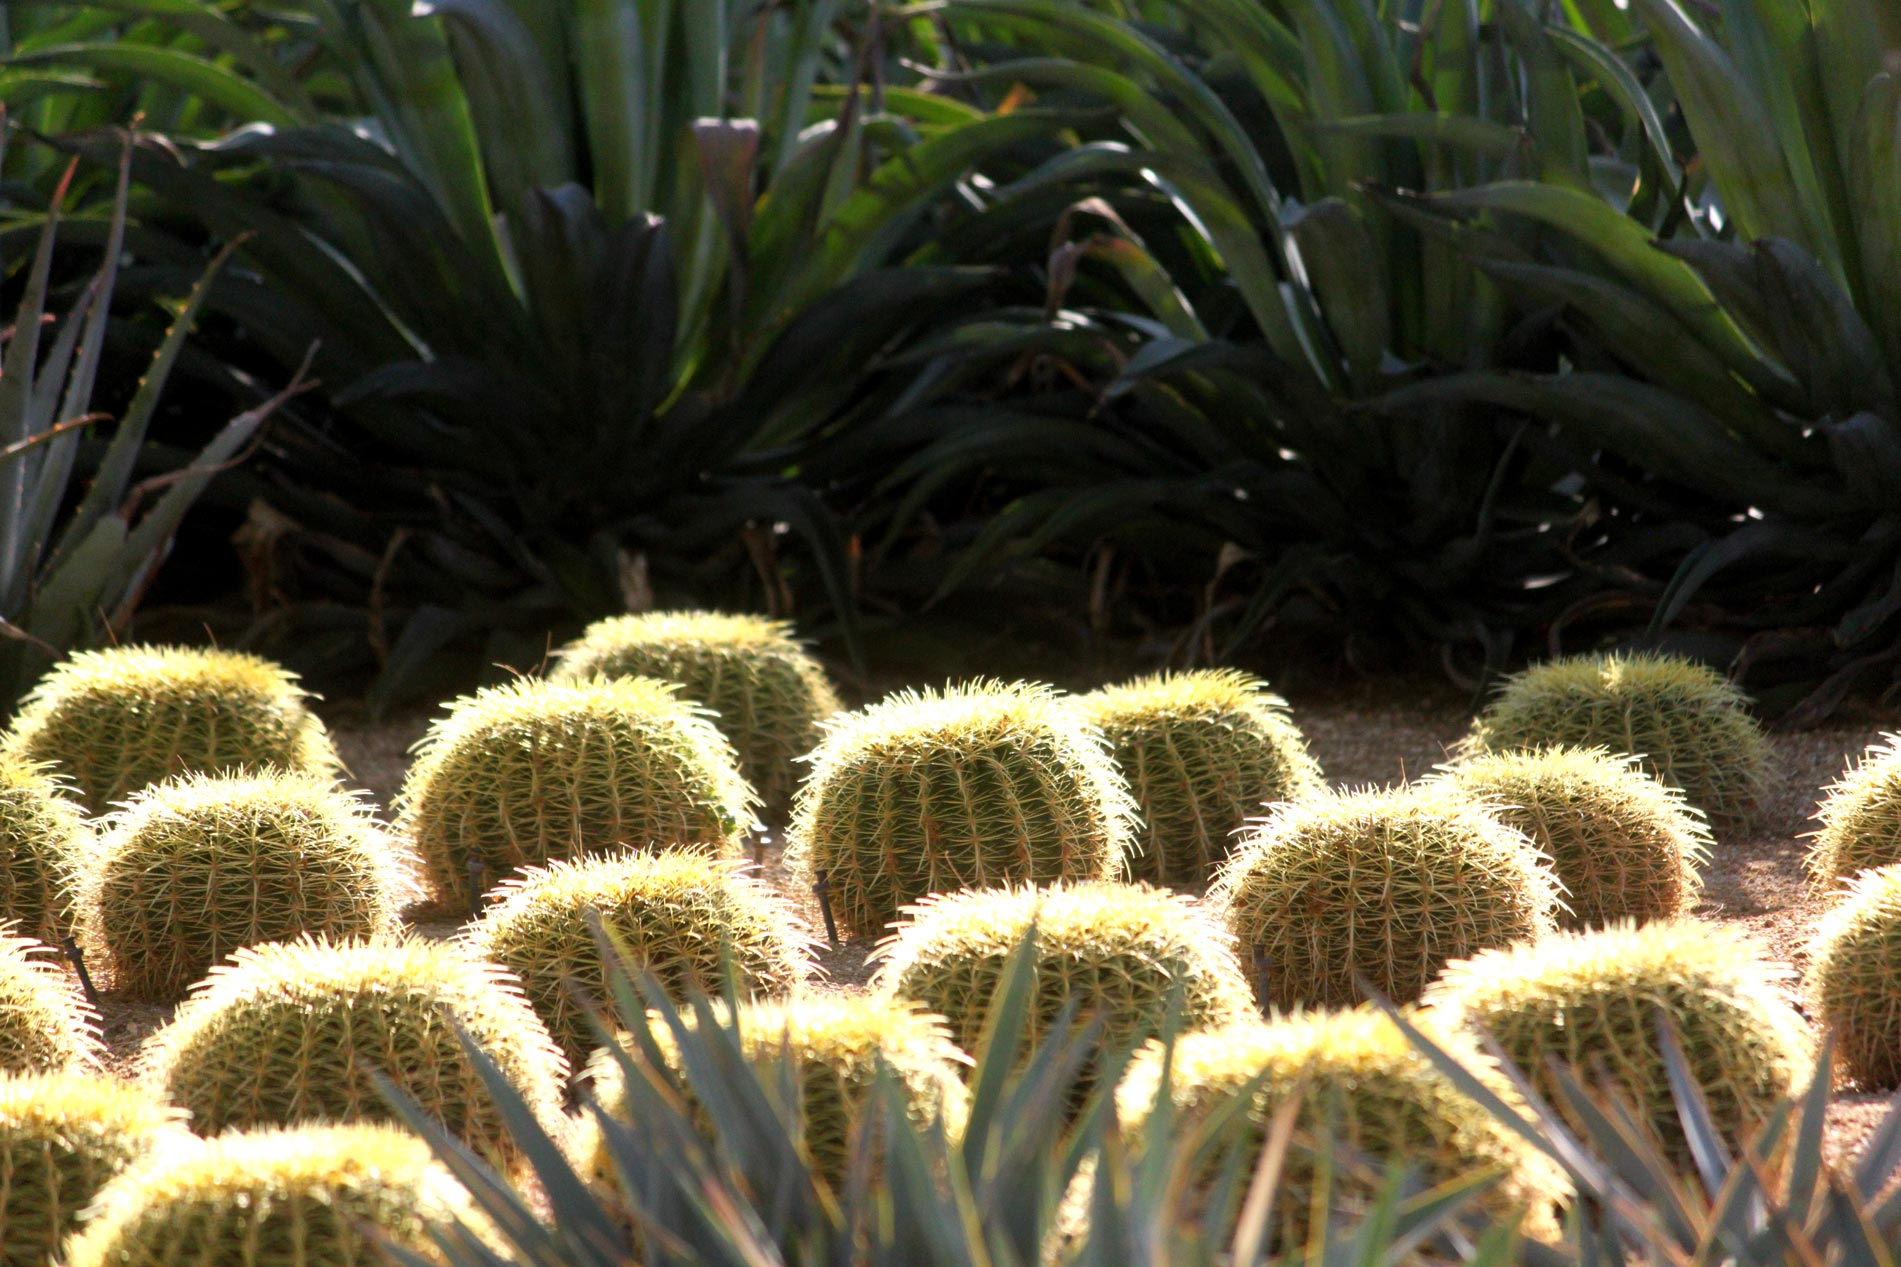 The glowing crowns of a group of Golden Barrel cacti backlit by the sun.